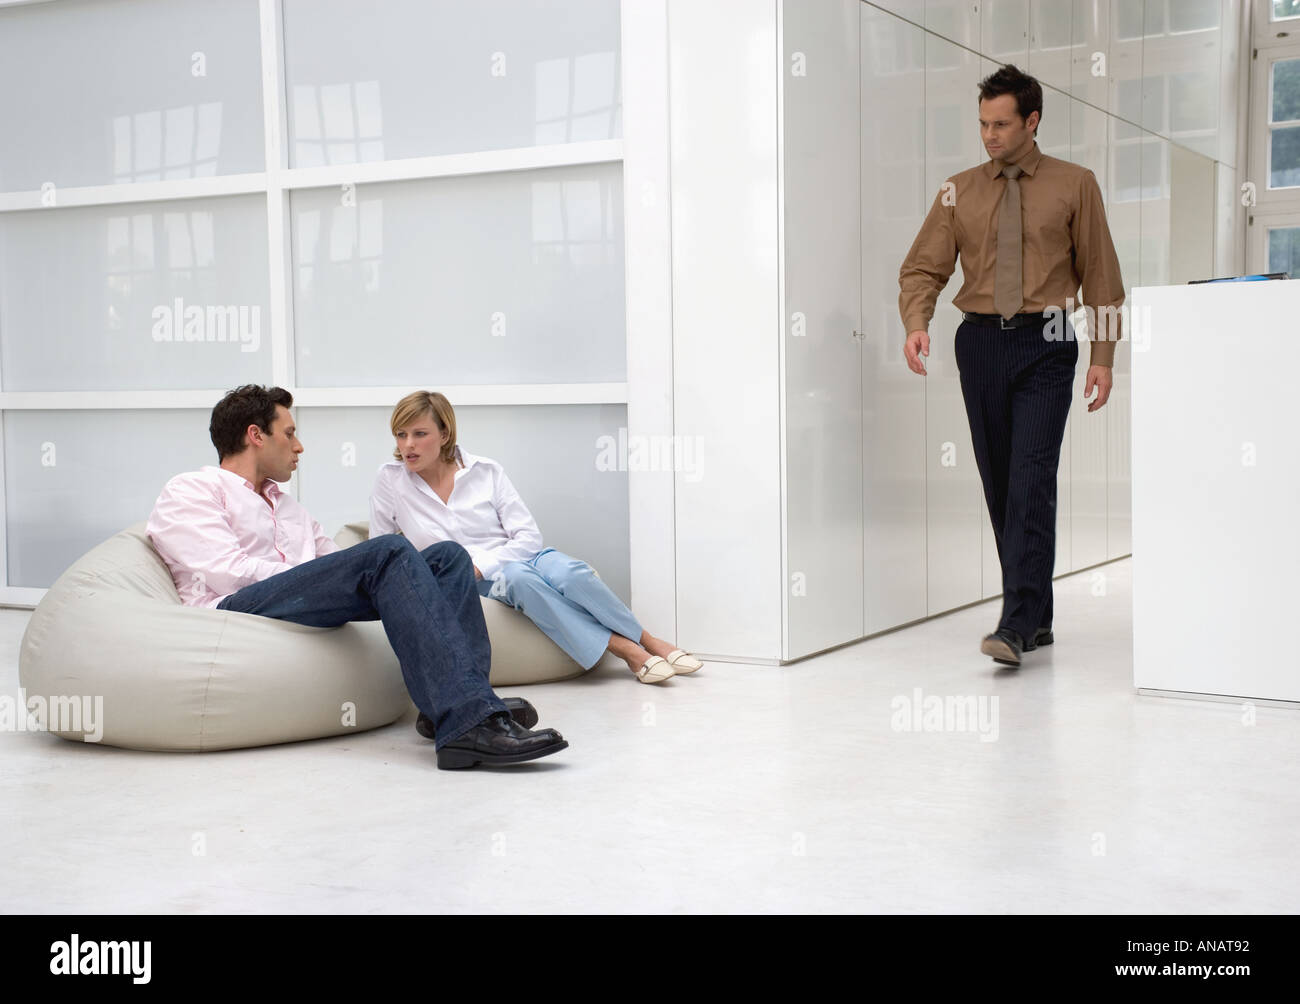 businessman and businesswoman talking to each other in casual office area as another man walks along - Stock Image